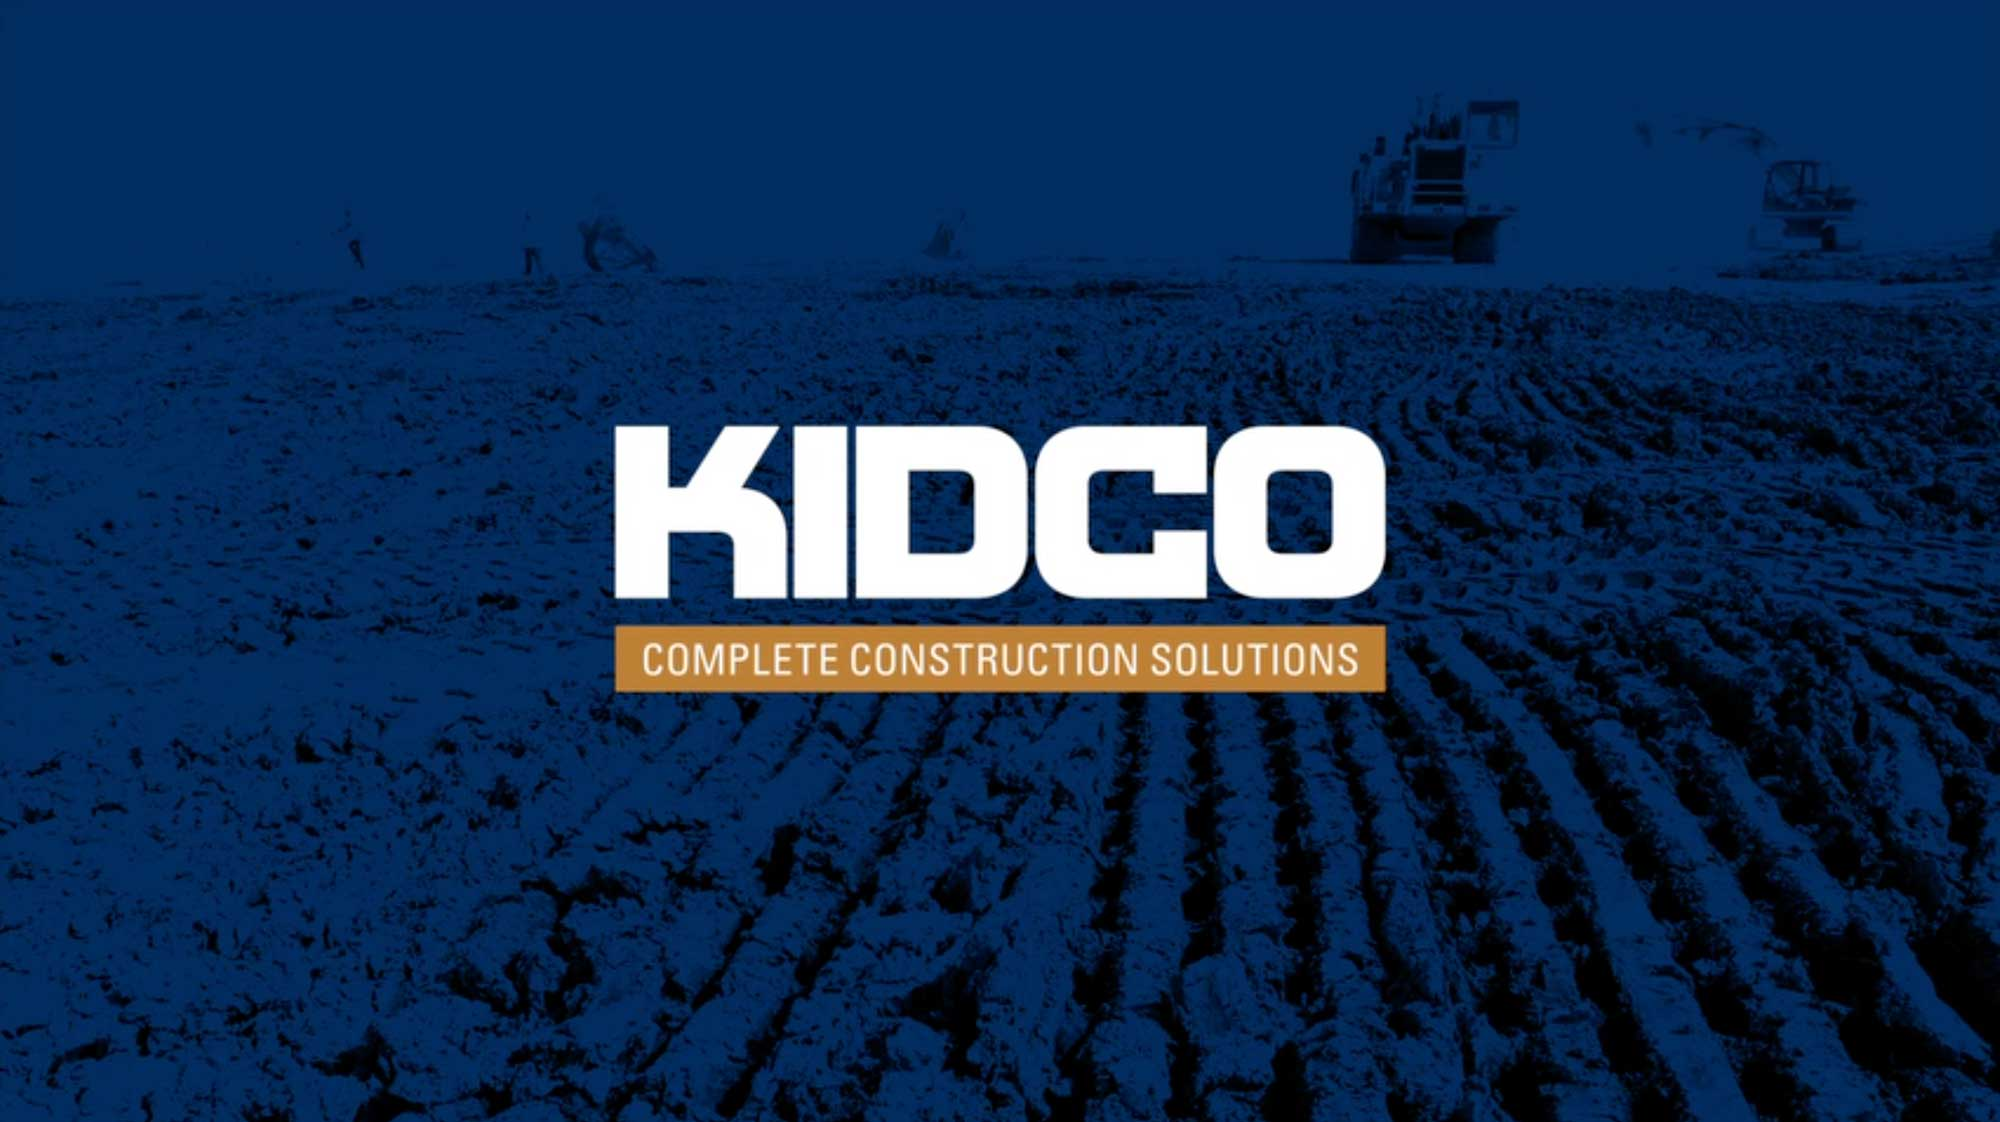 Corporate video production for Kidco Construction of rebrand designed by Studio Forum in Calgary